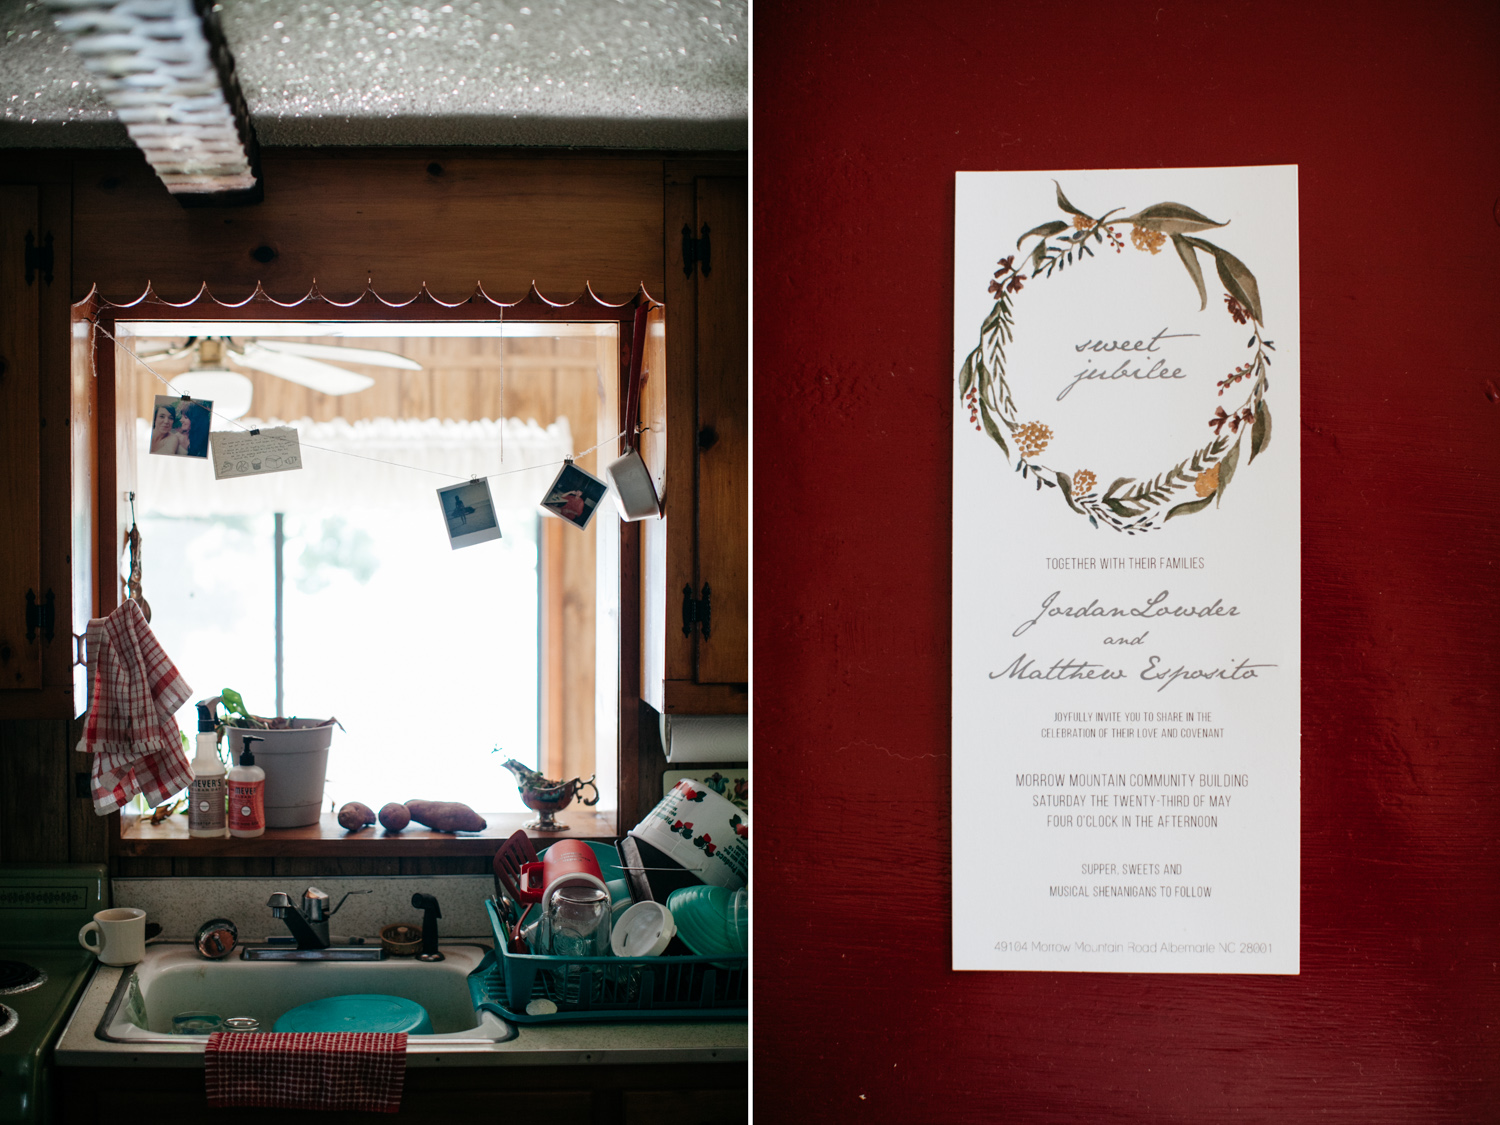 Jordan + Matthew // A Morrow Mountain Wedding — Grain & Compass